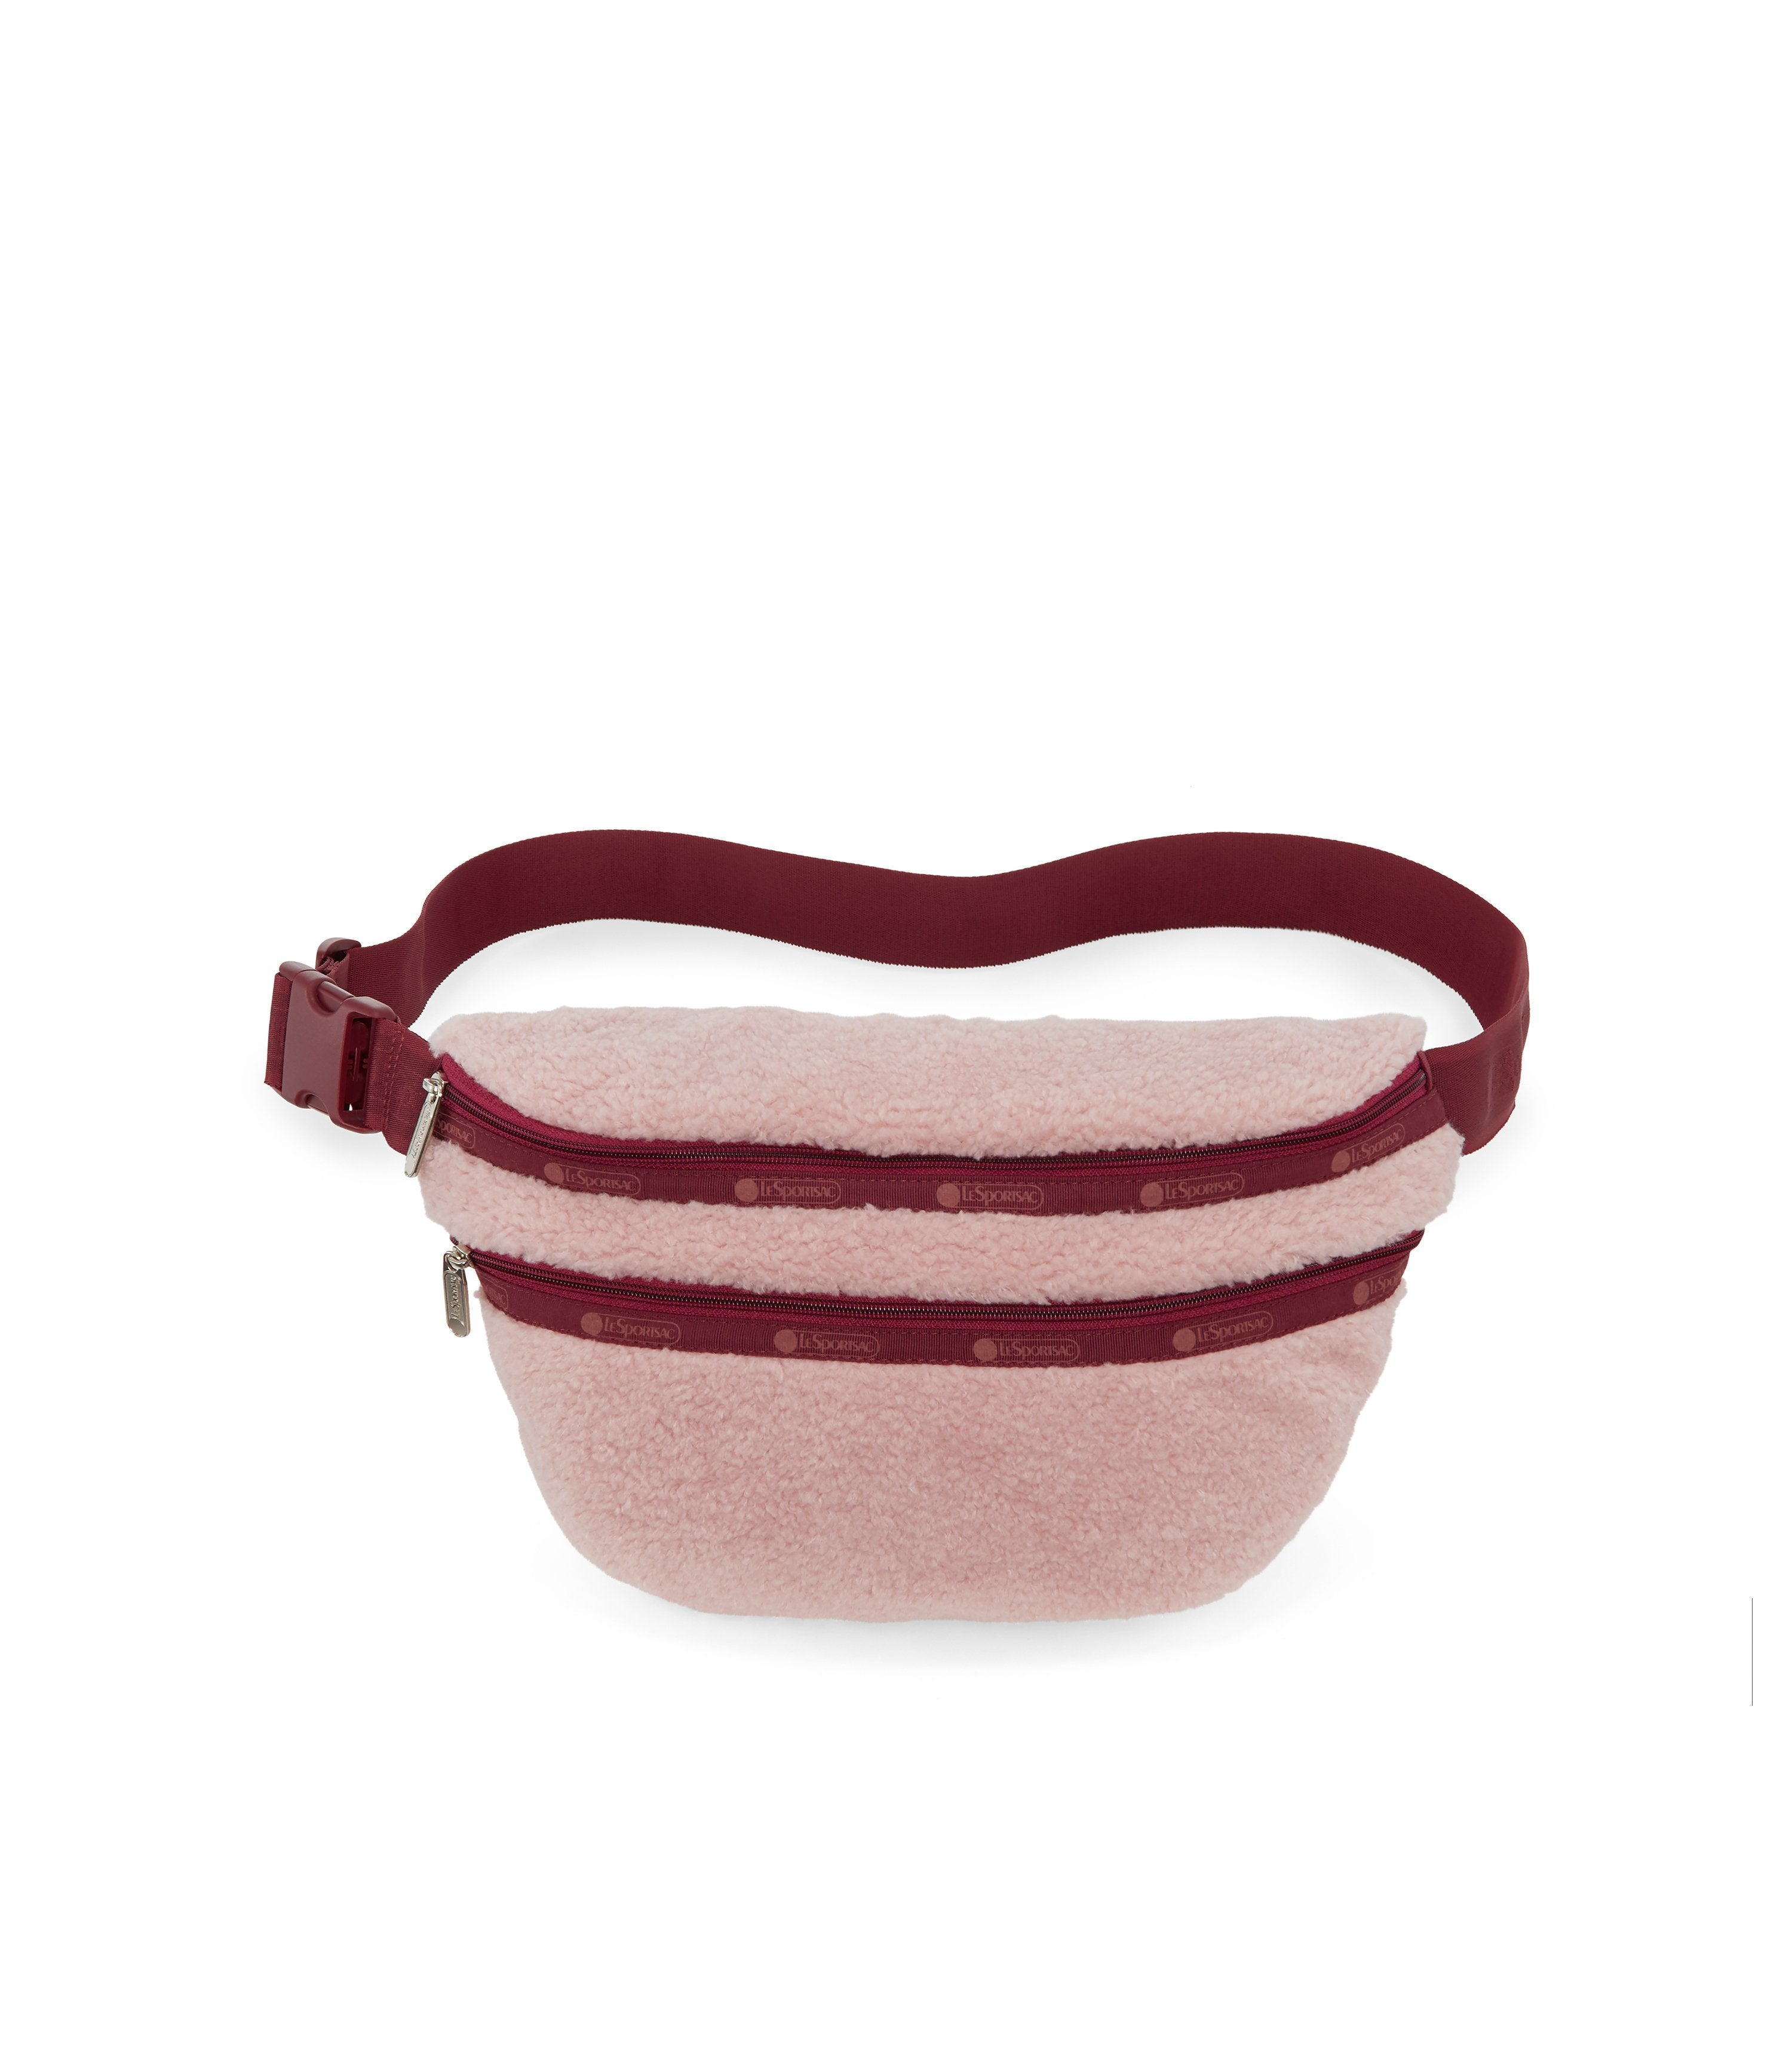 Heritage Belt Bag, Accessories, Makeup and Cosmetic Bags, LeSportsac, Pink Sherpa